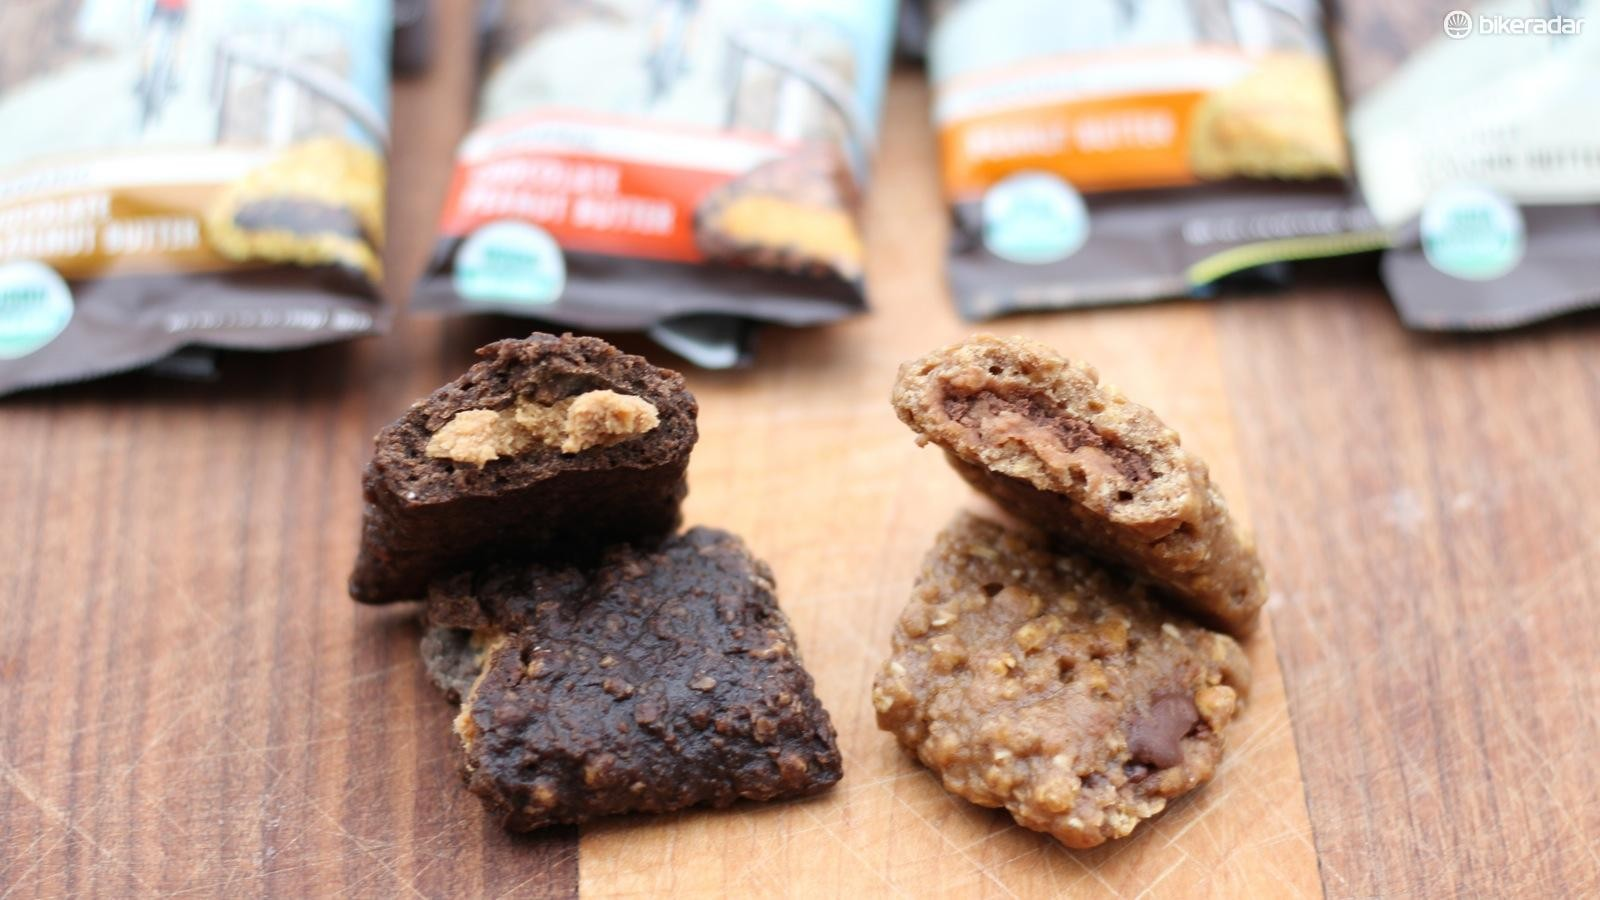 The new organic bars are filled with almond, peanut and hazelnut butters